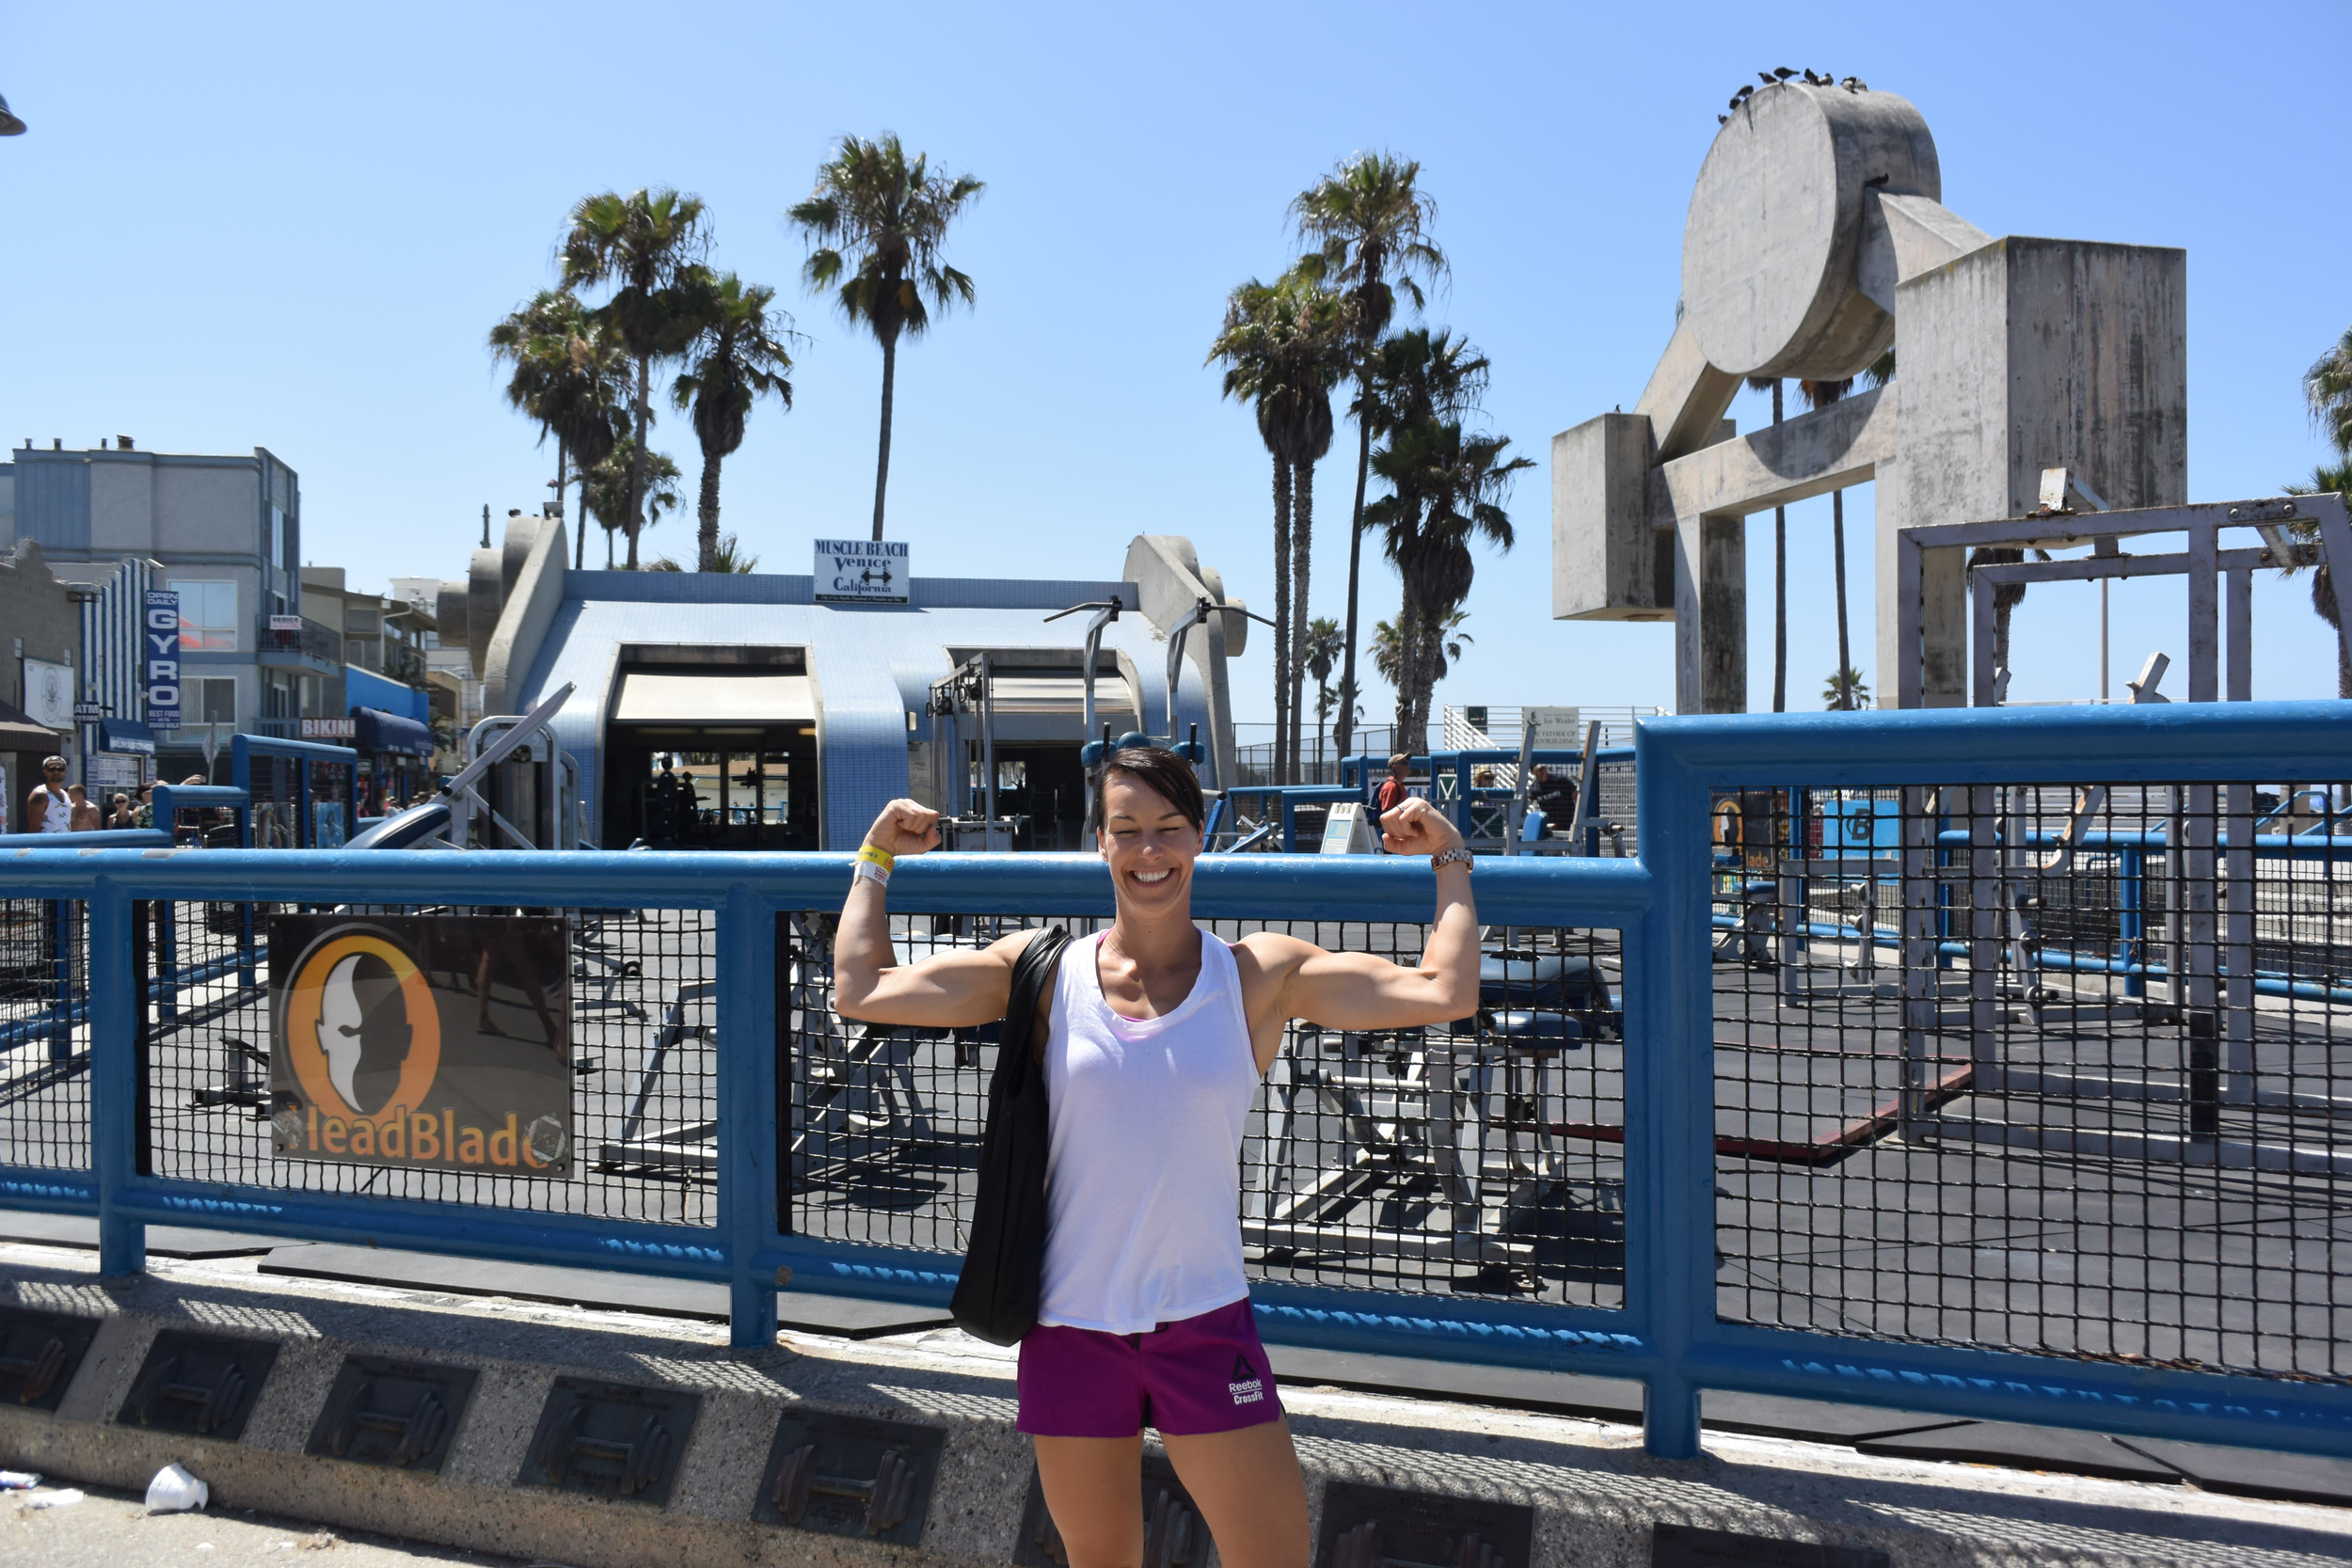 What a fun place to WOD! Muscle beach may be missing a few key things, like the CFSV vibe, but one can still get a great workout in the middle of Venice Beach!